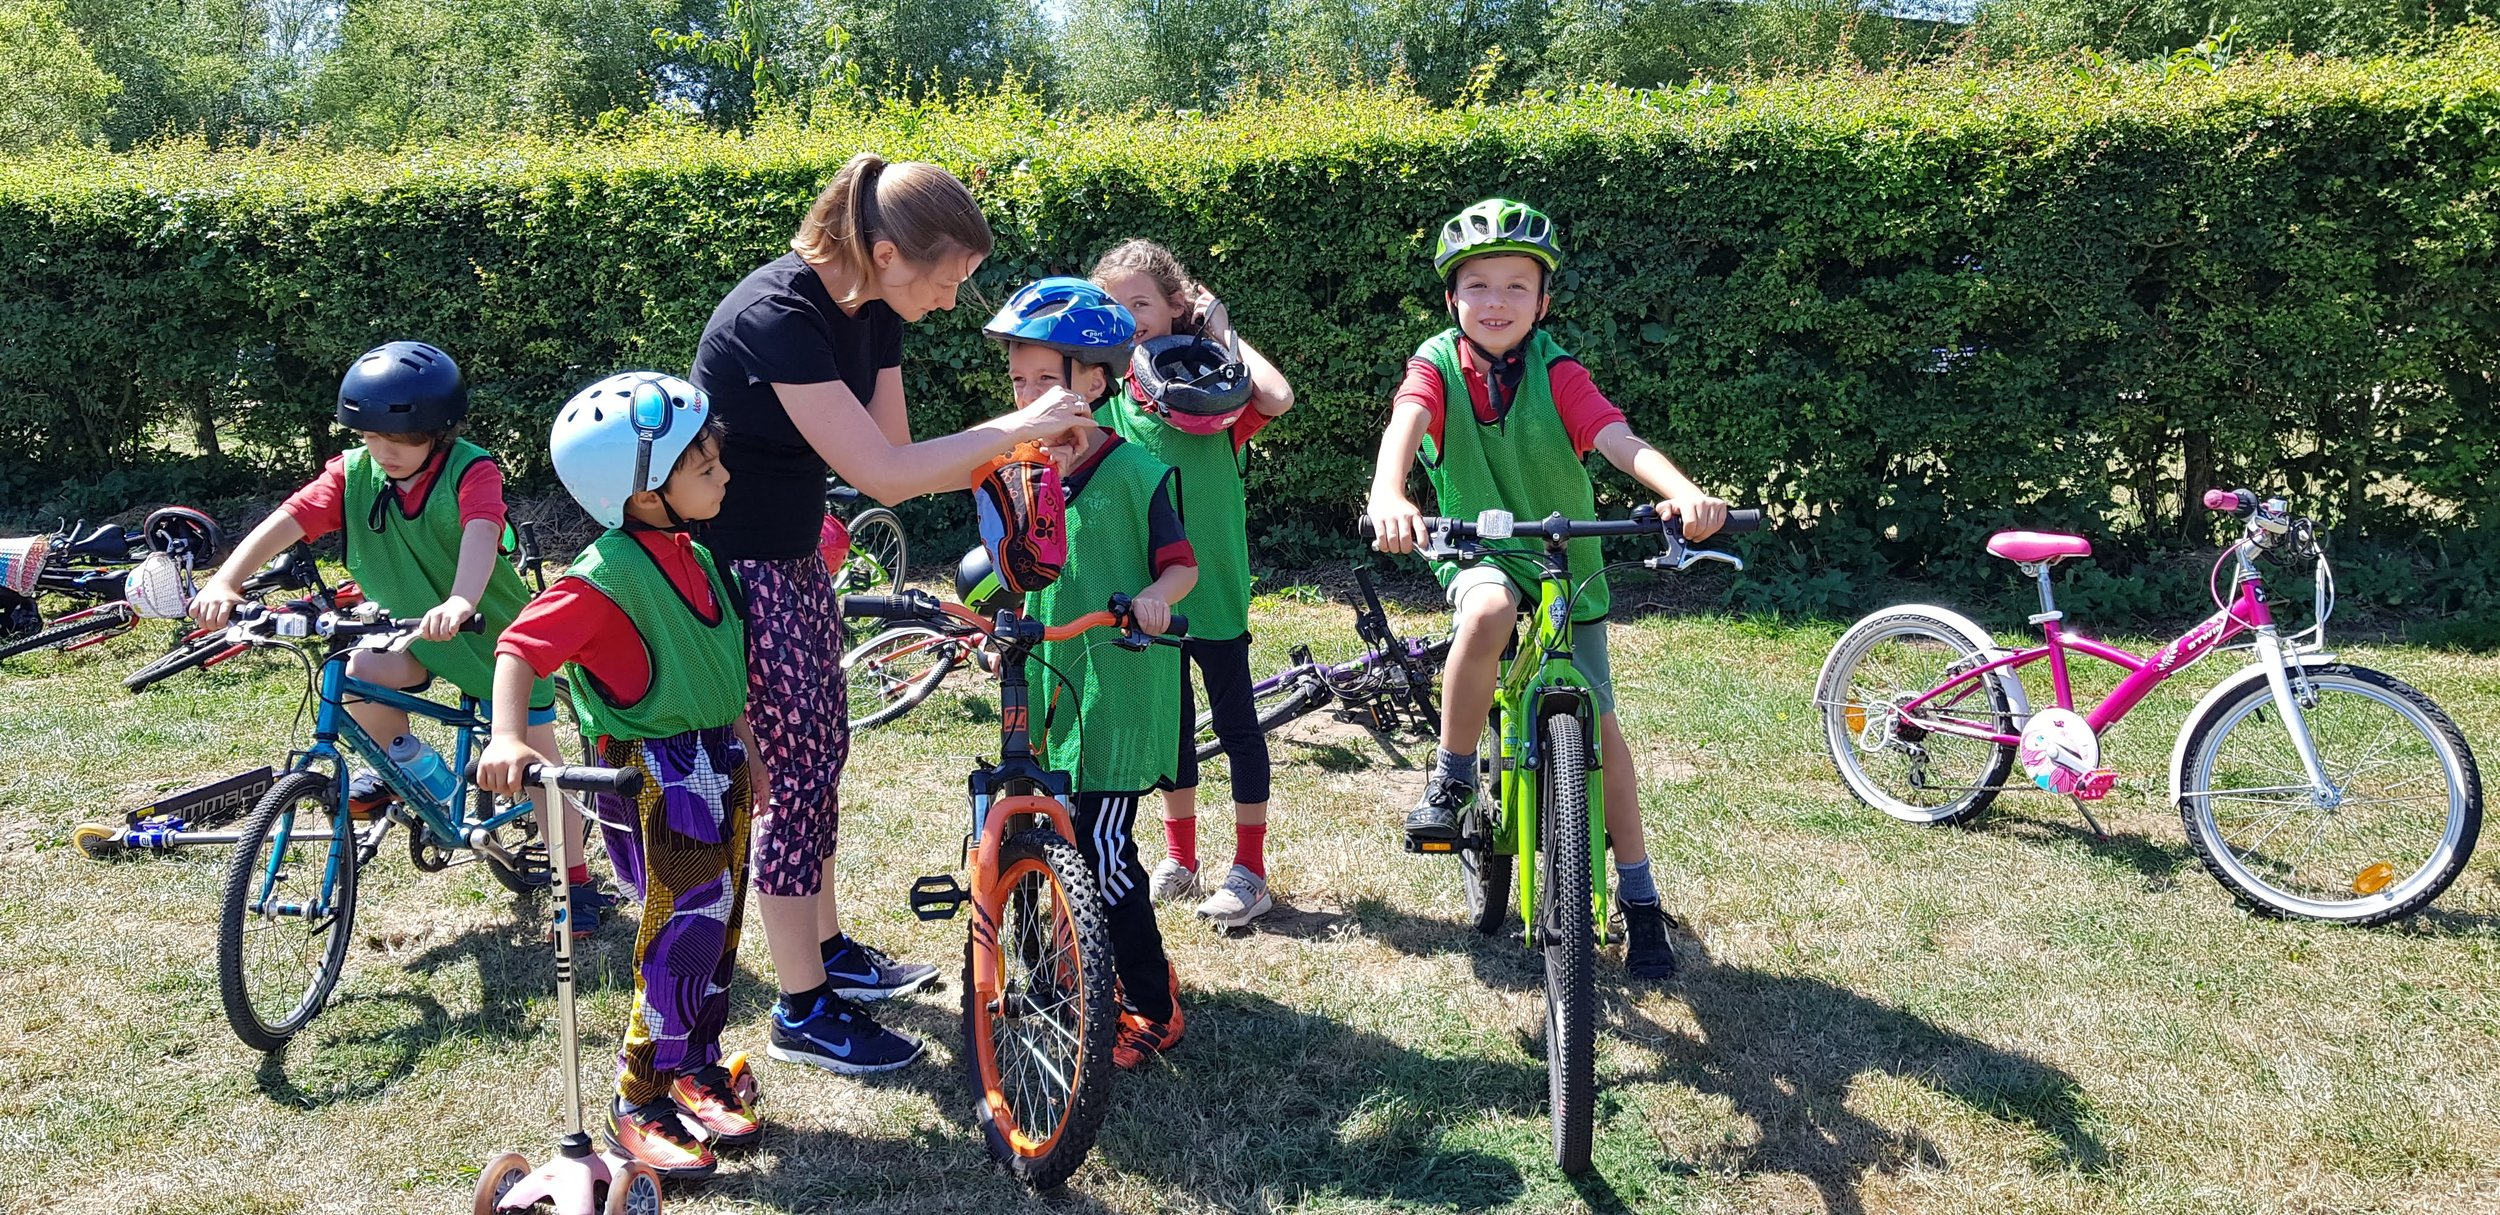 Primary aged children bike riding during sports day